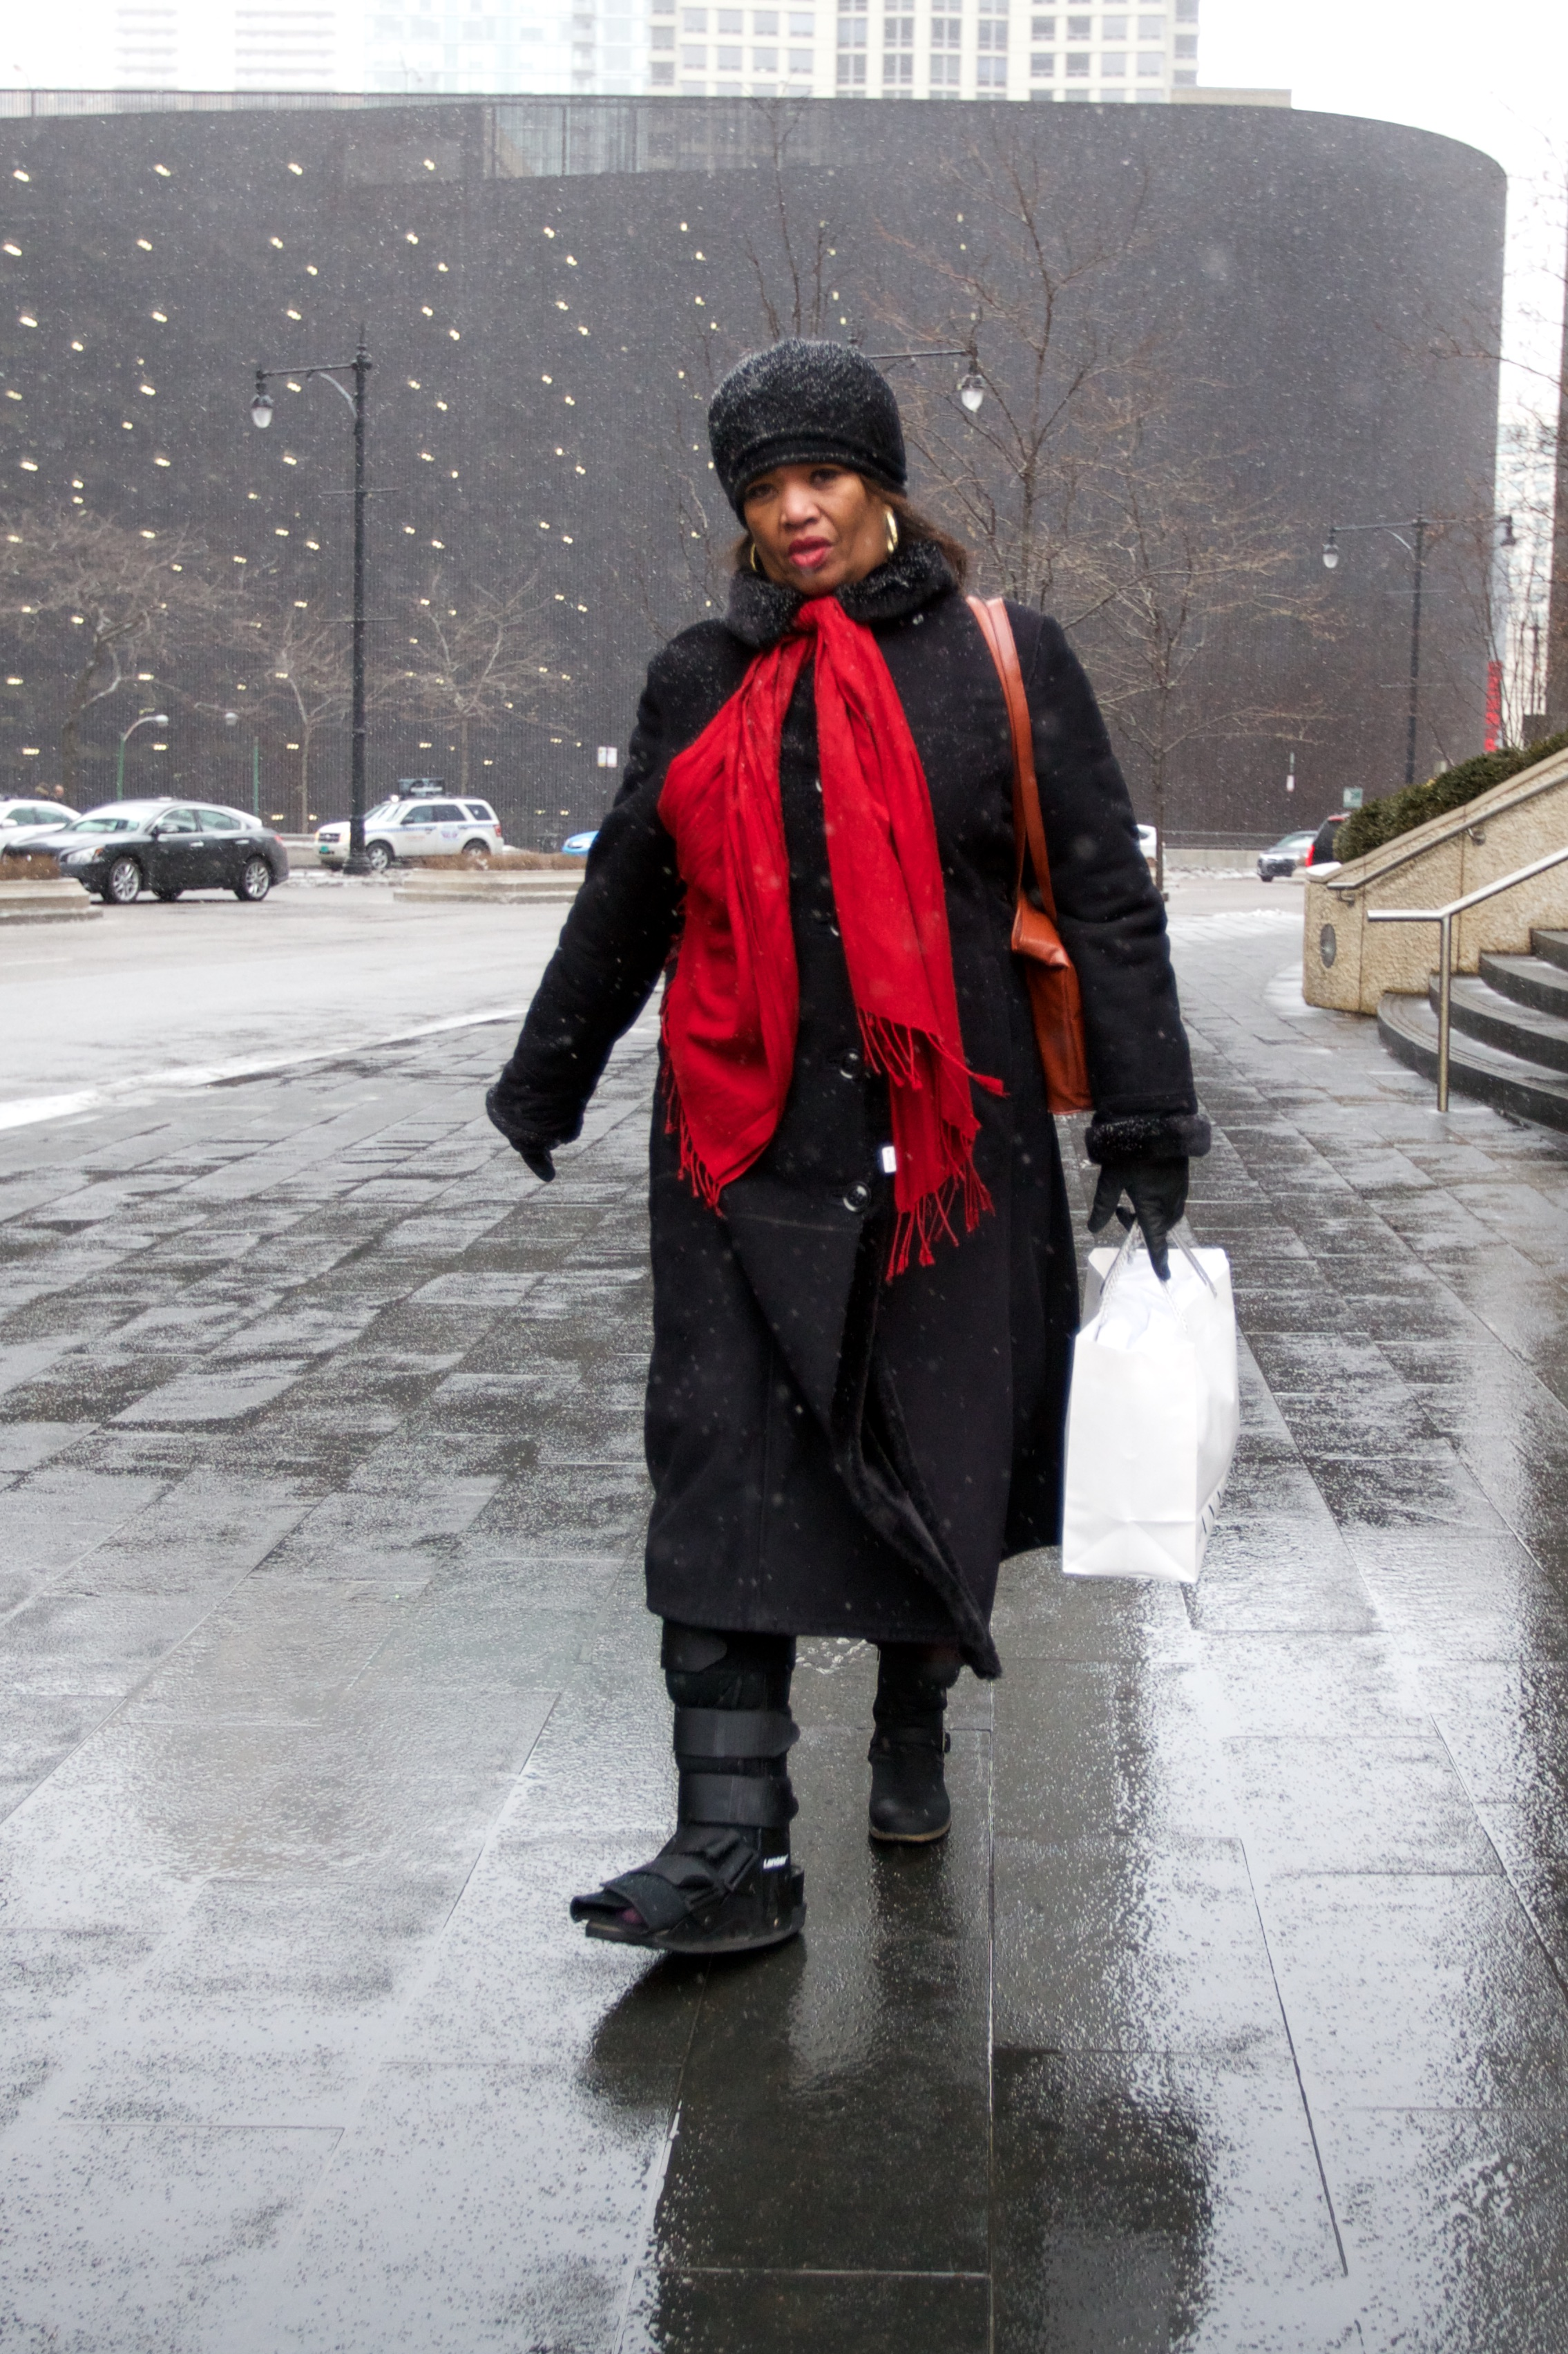 Braving the snow on north wabash st.